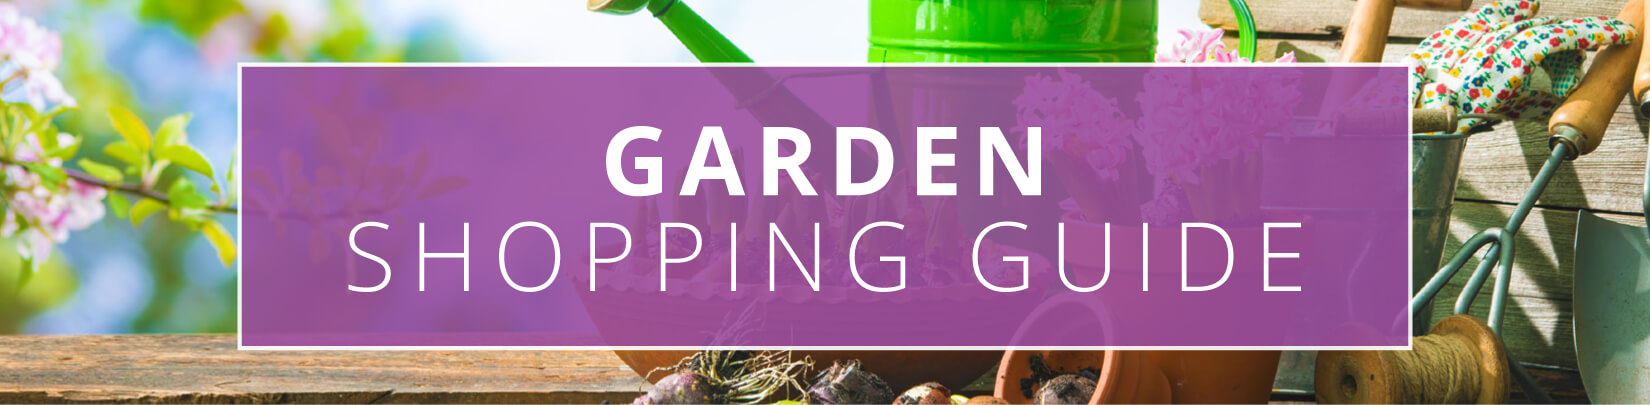 How to be Healthy in the Garden and Outdoors with These Non-Toxic Products